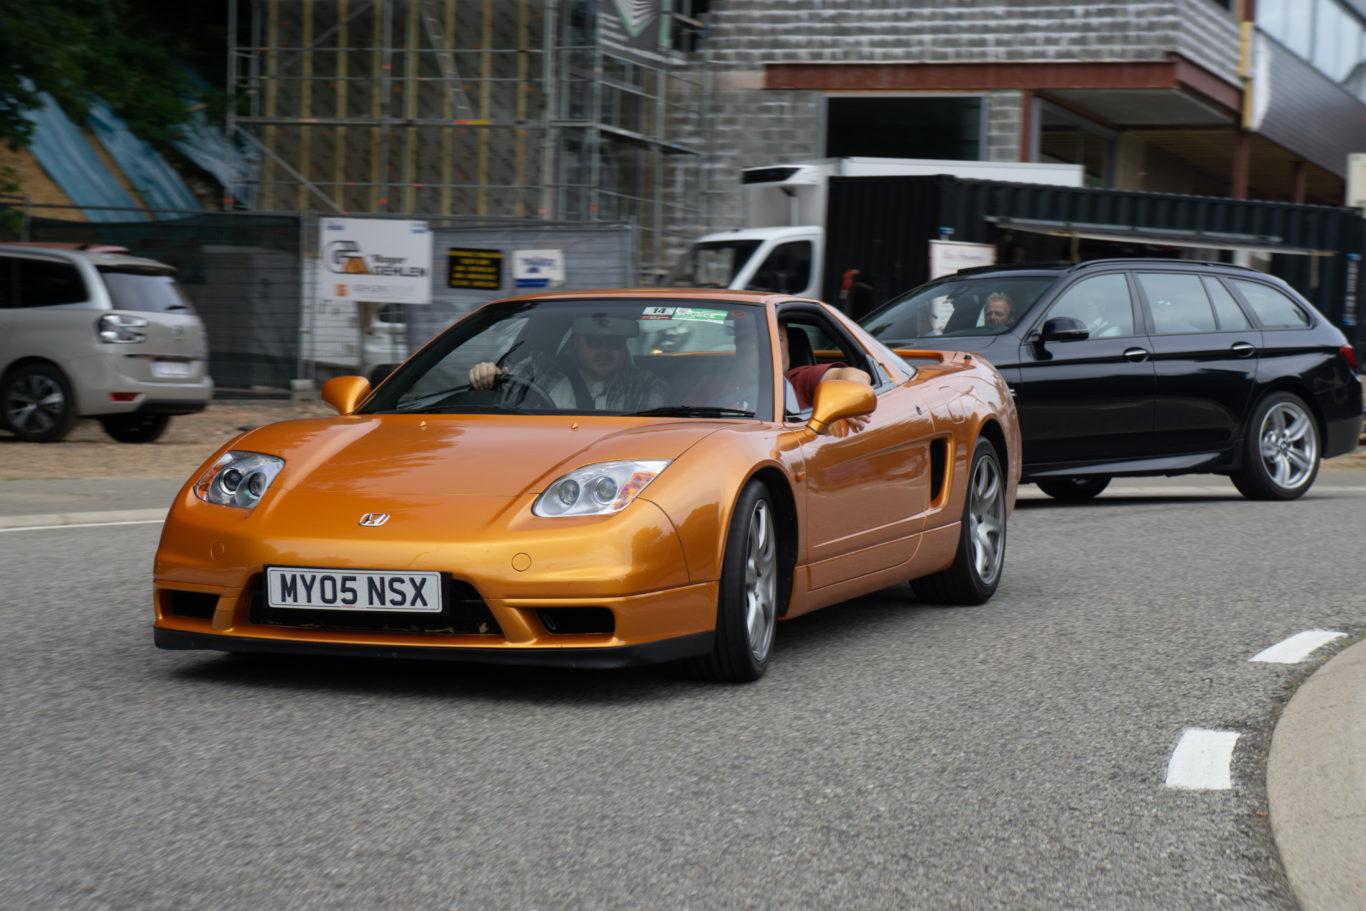 The classic NSX still looks modern today